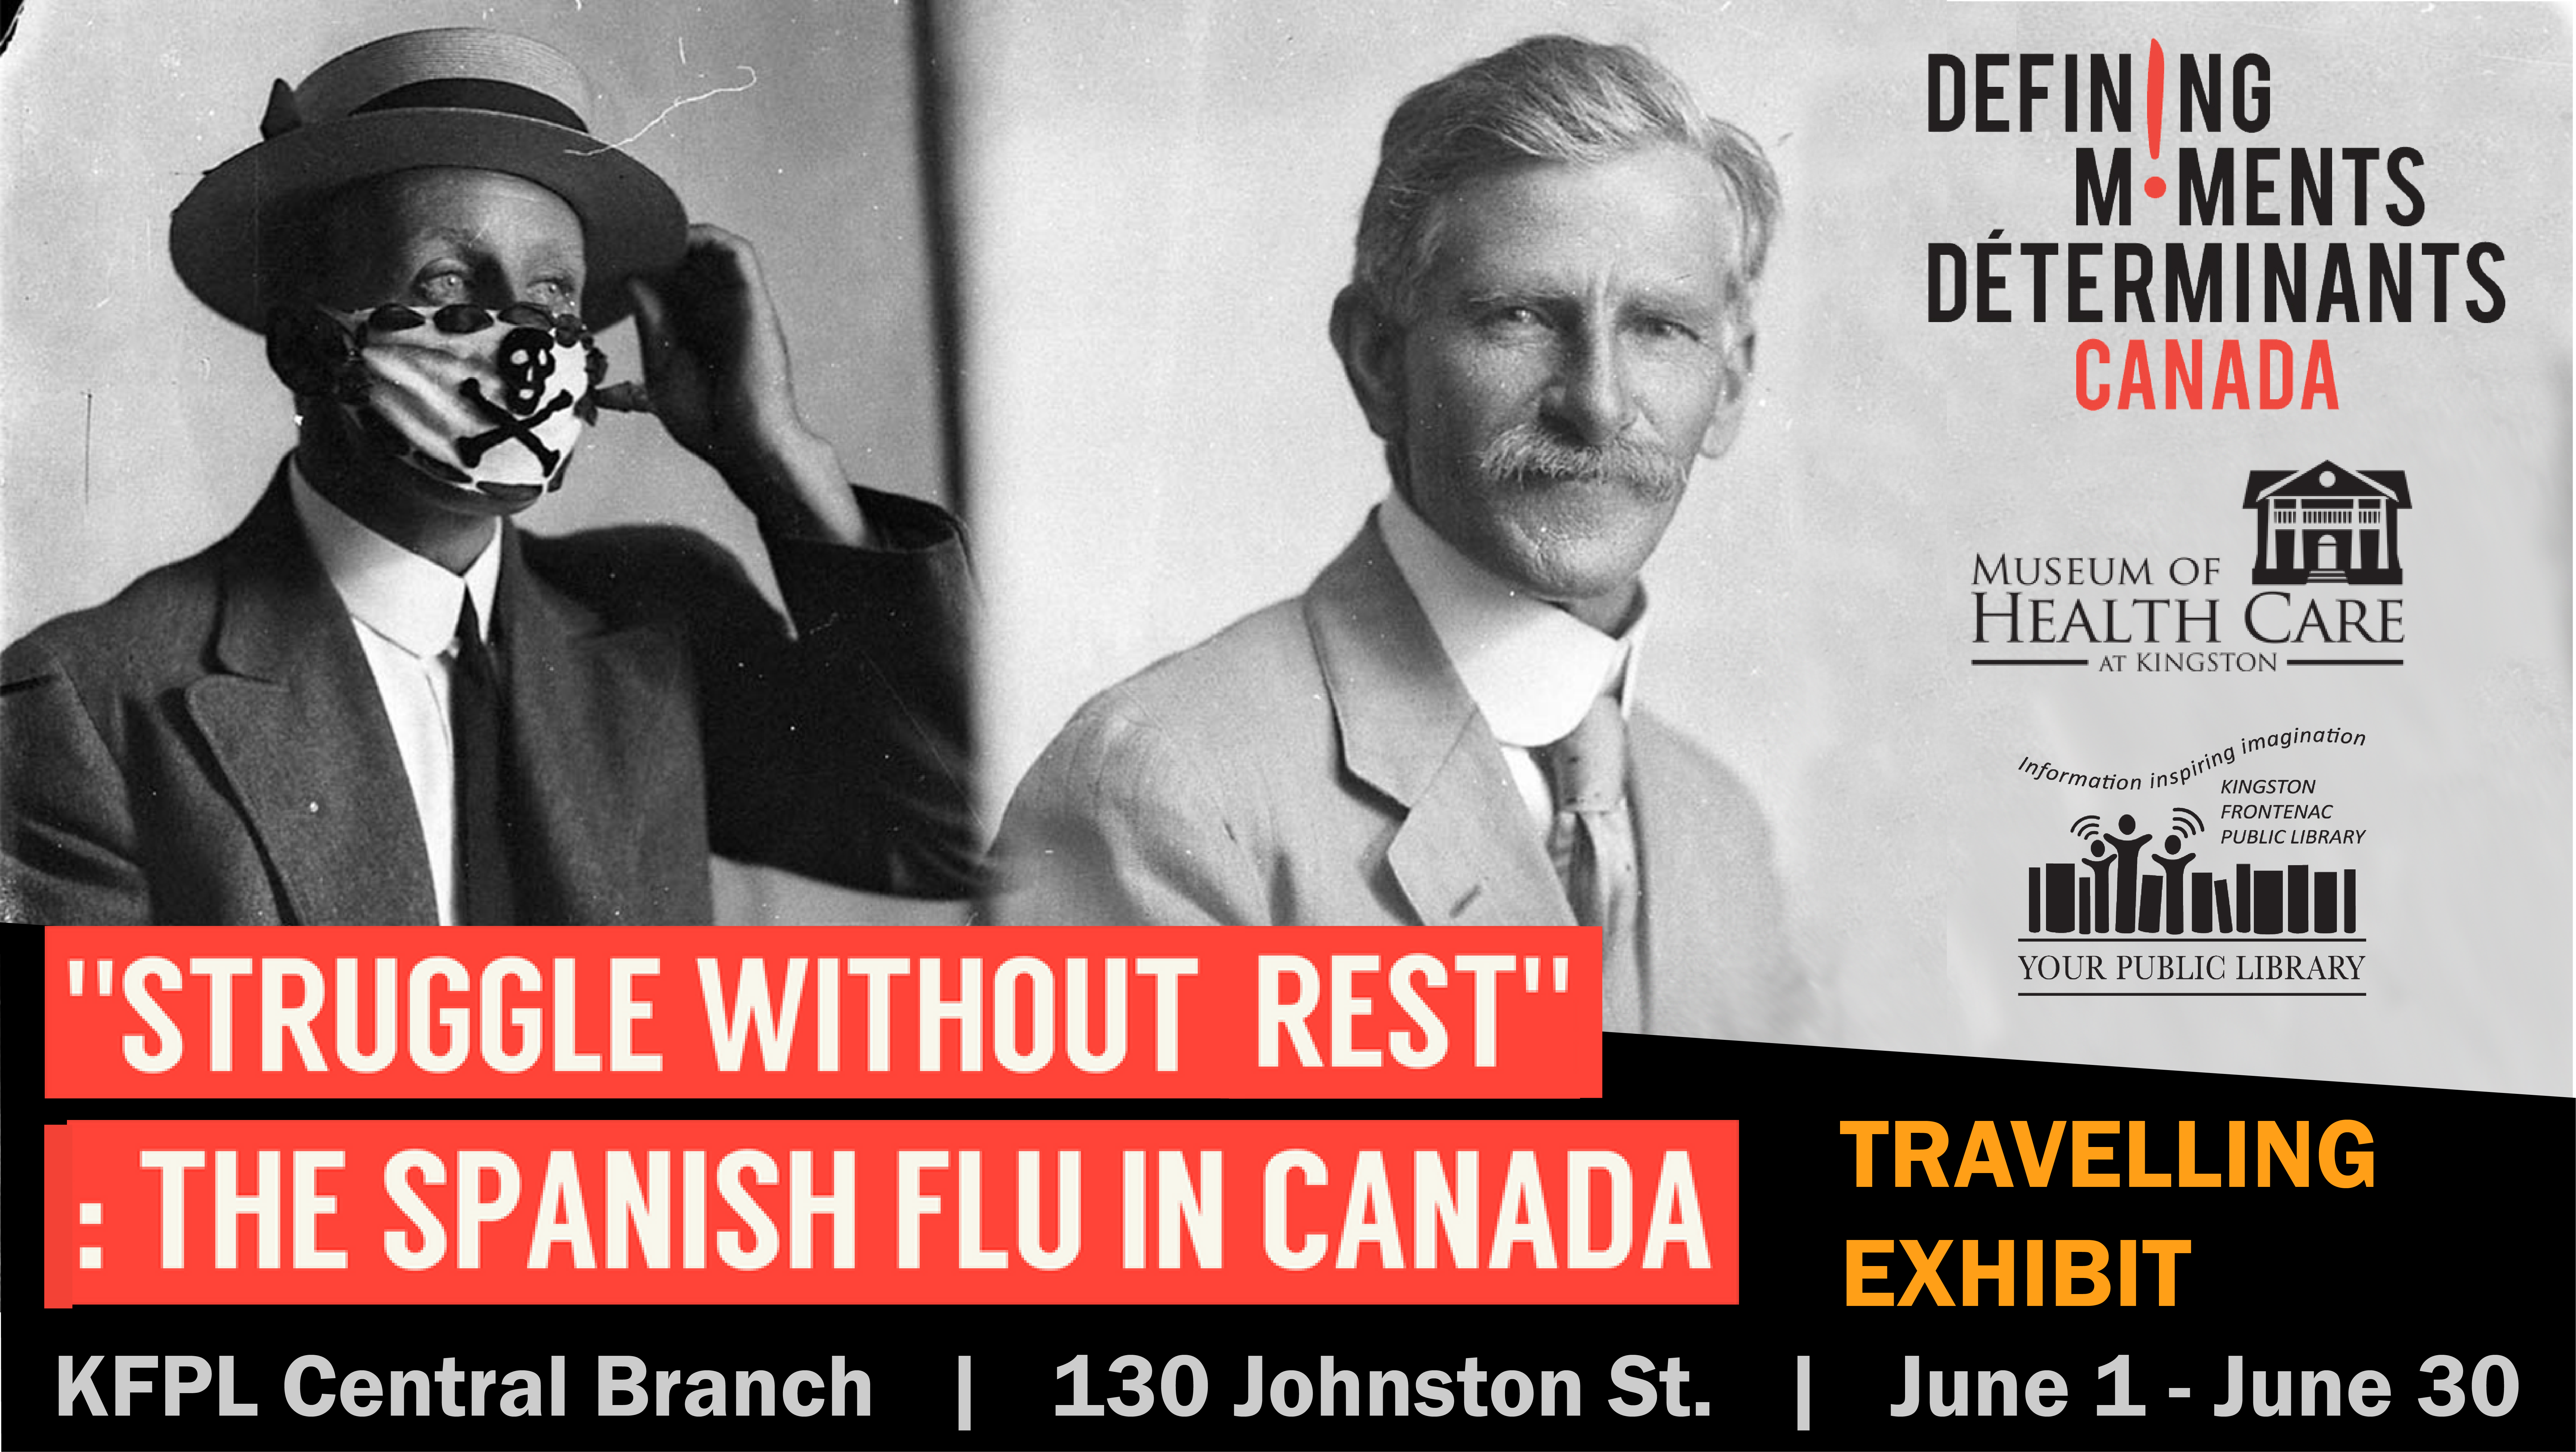 Struggle without rest: the Spanish flu in Canada